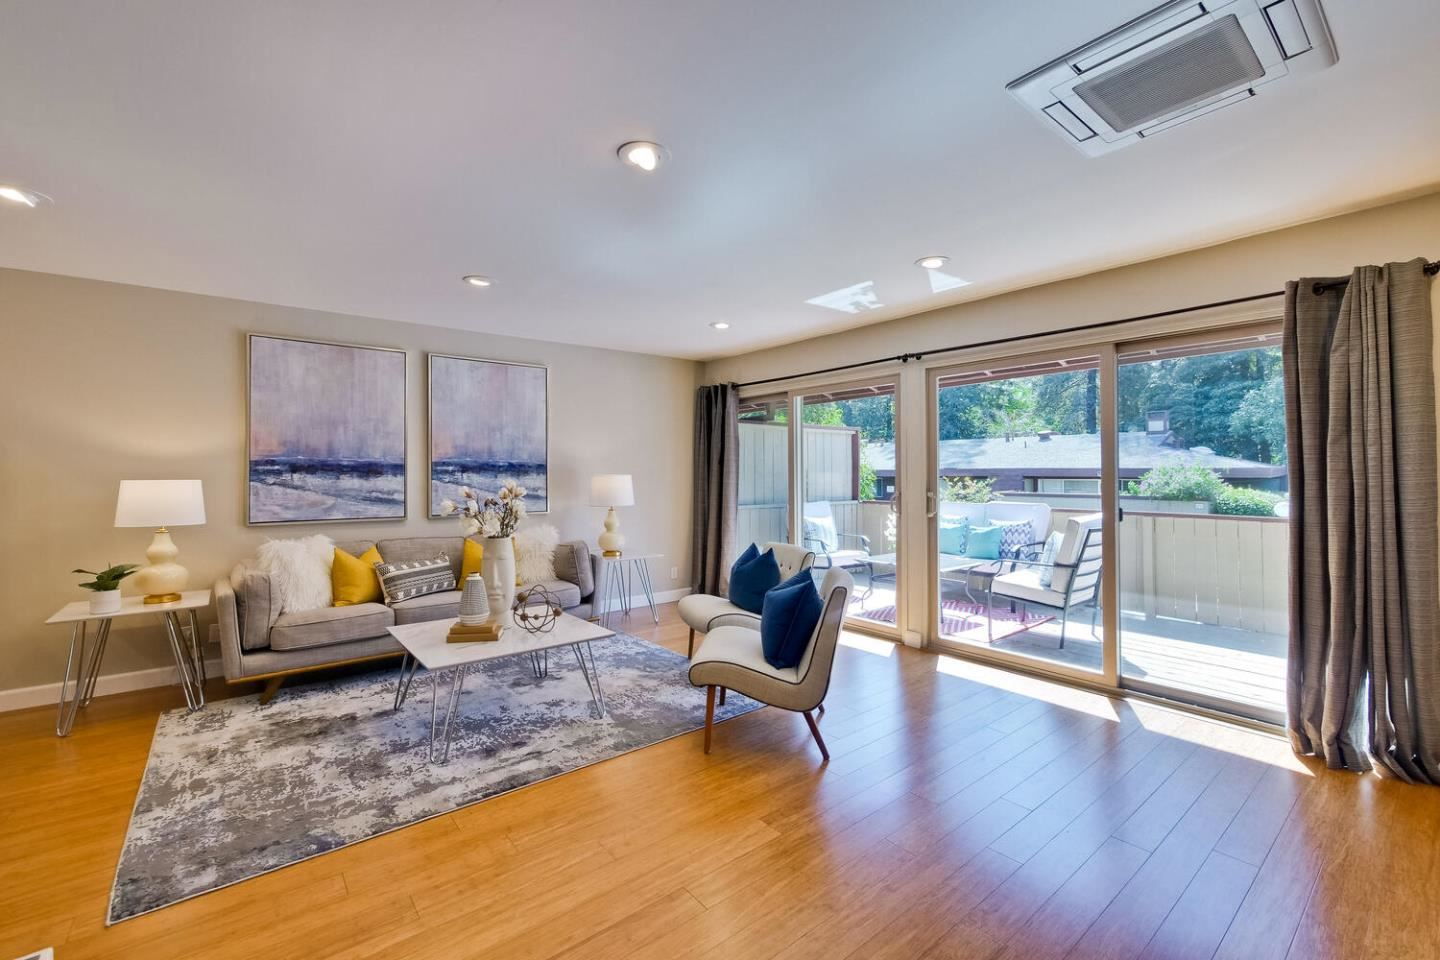 Photo for 500 West Middlefield Road #153, MOUNTAIN VIEW, CA 94043 (MLS # ML81866701)